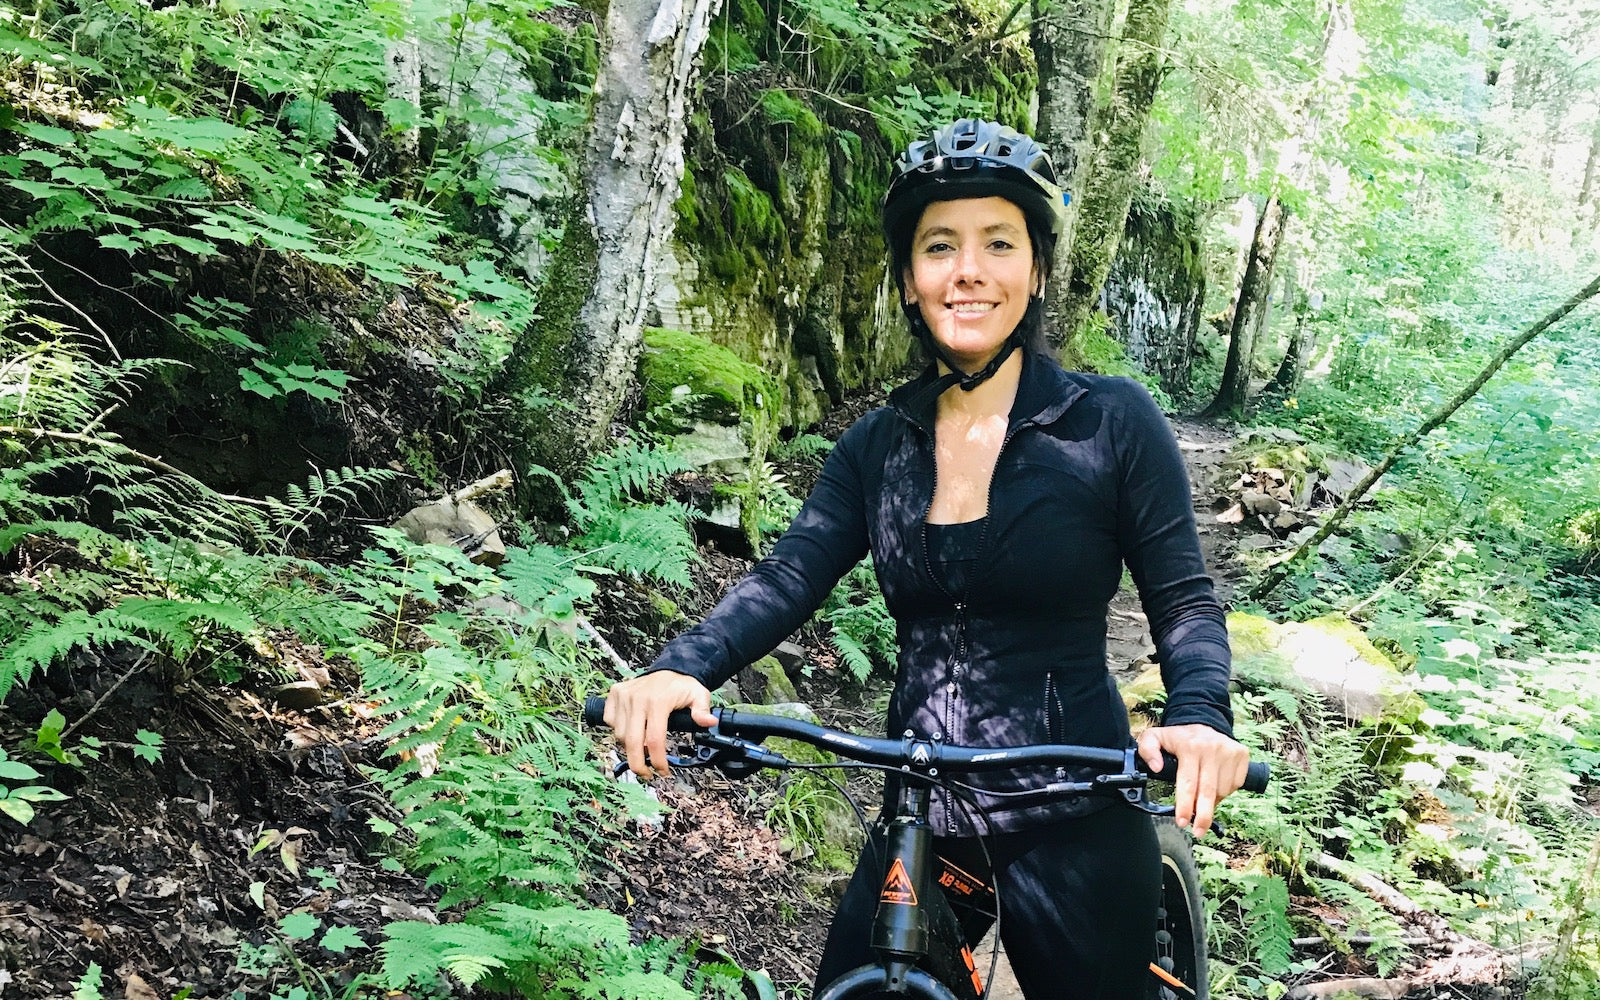 Vanessa trying mountain Bike after cycling changed her life